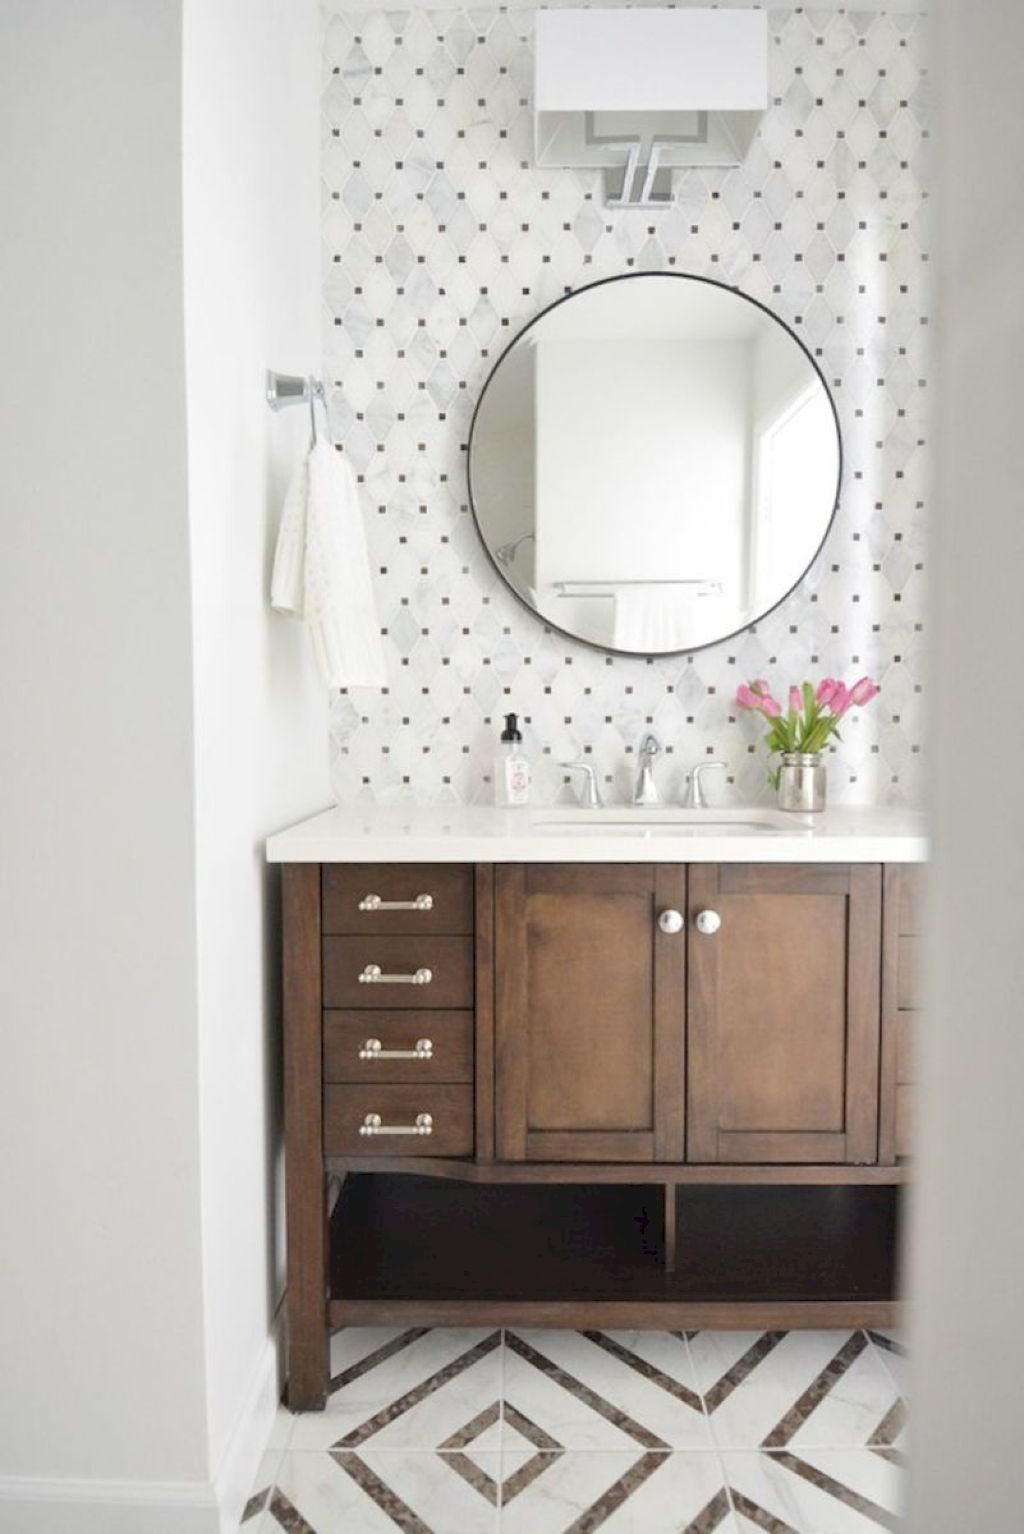 18 Awesome Small Bathroom Remodel Ideas | BATHROOM MAKE OVER ...